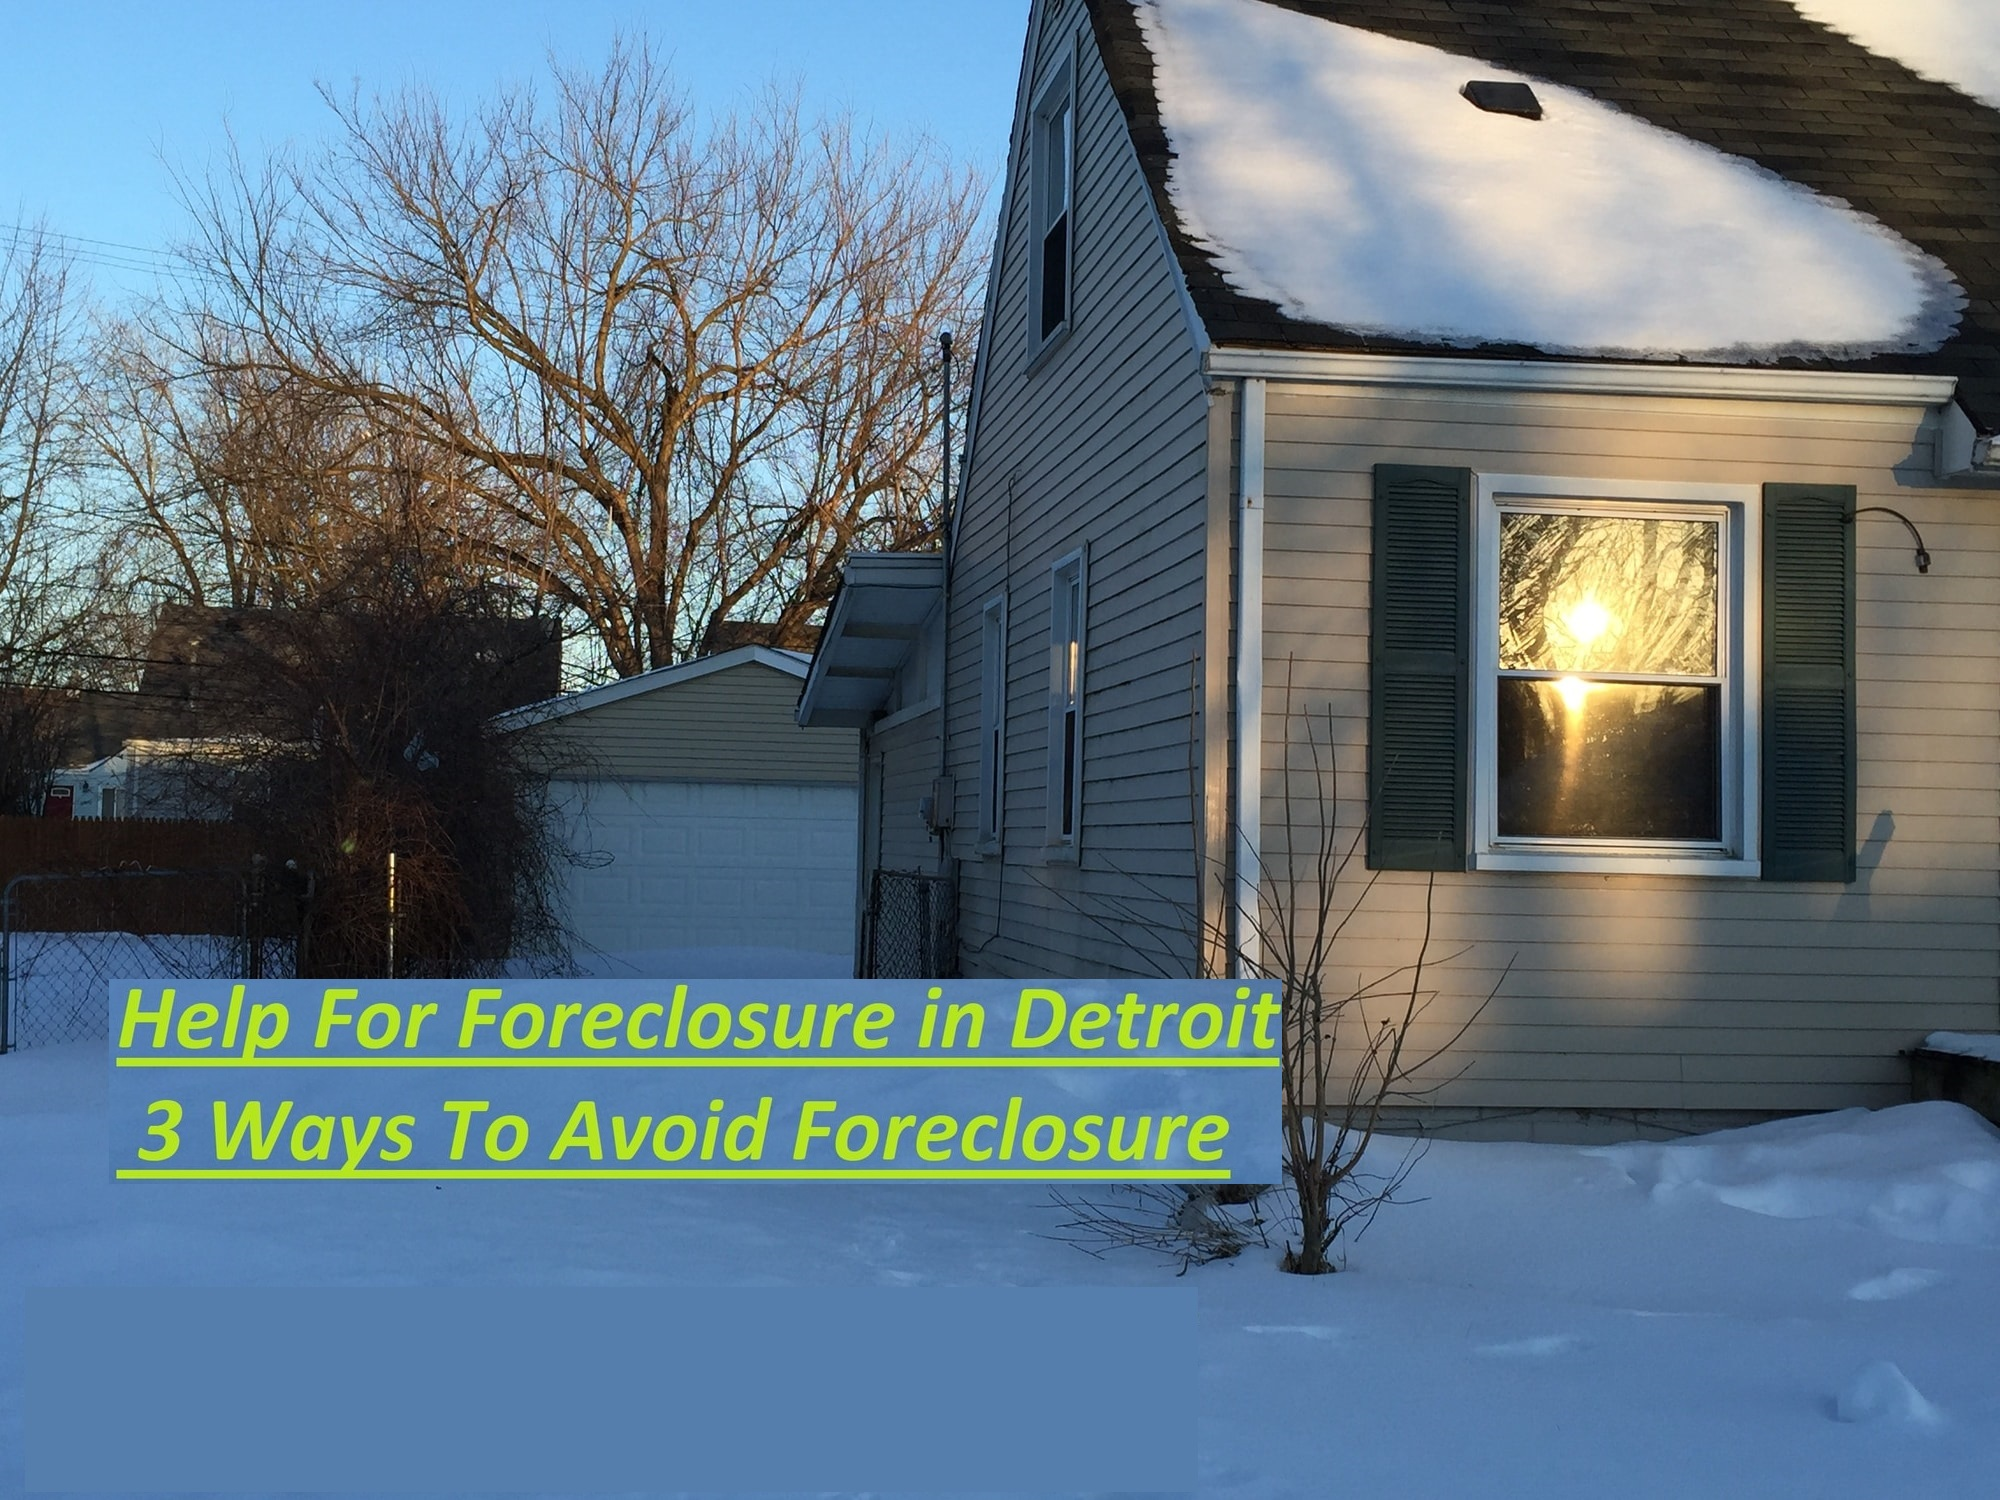 detroit house in winter with the text overlayed help for foreclosure in detroit 3 ways to avoid foreclosure